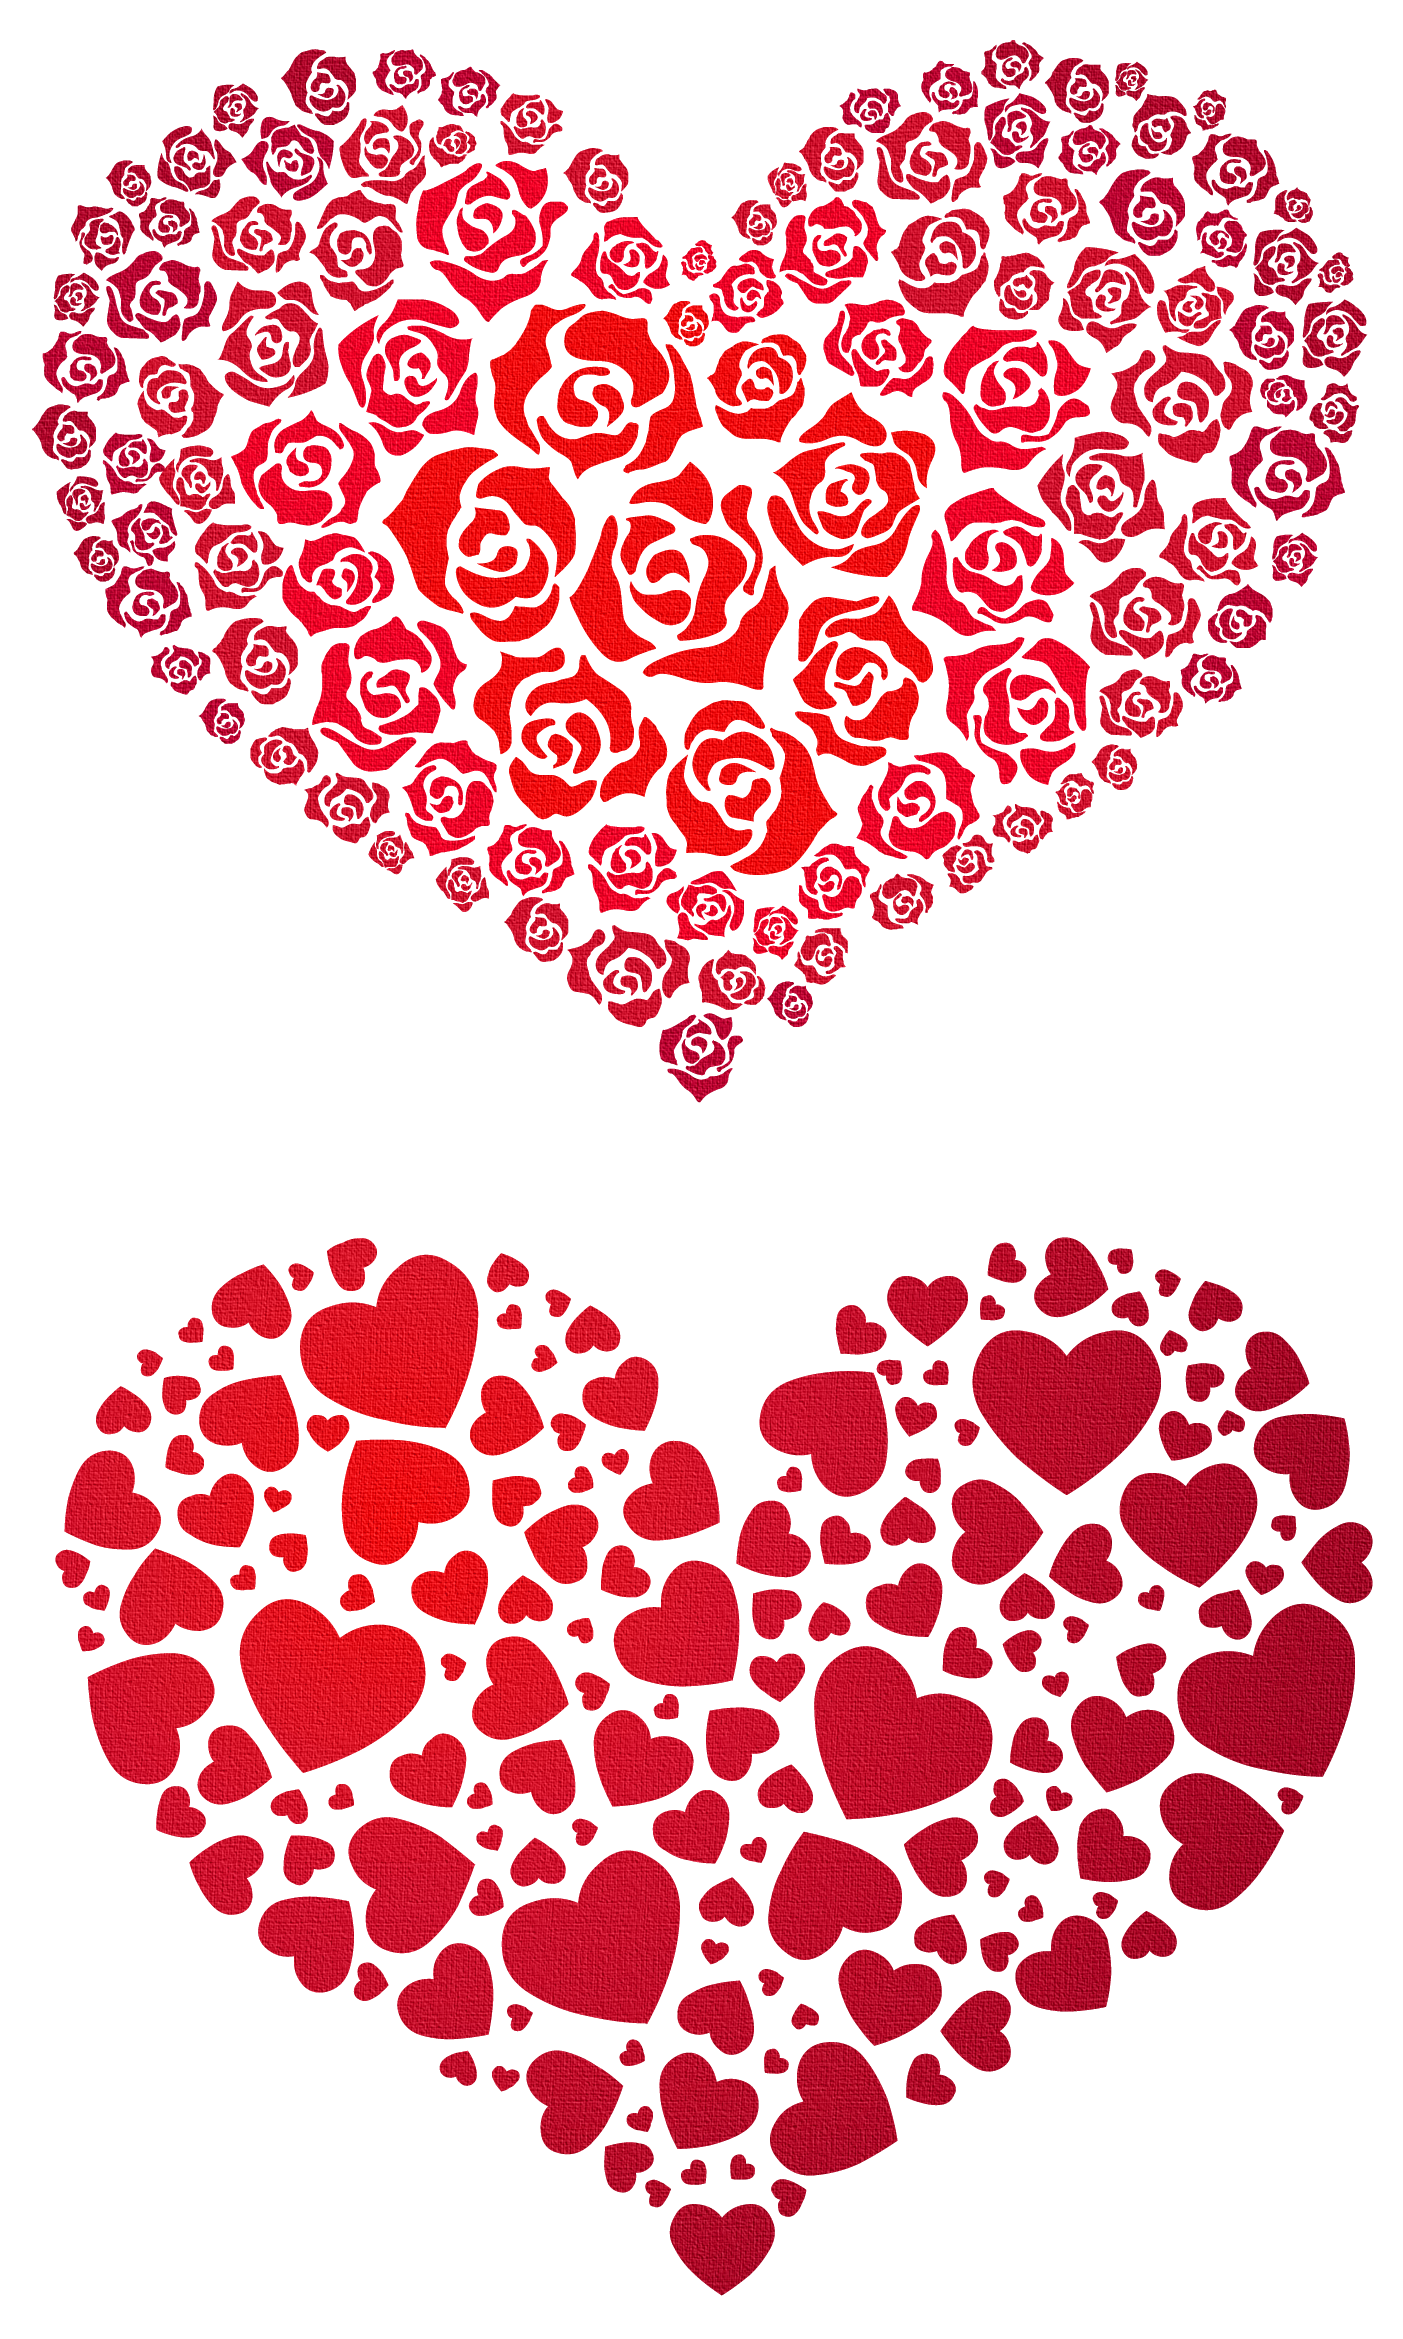 Valentines hearts png. Valentine clipart gallery yopriceville